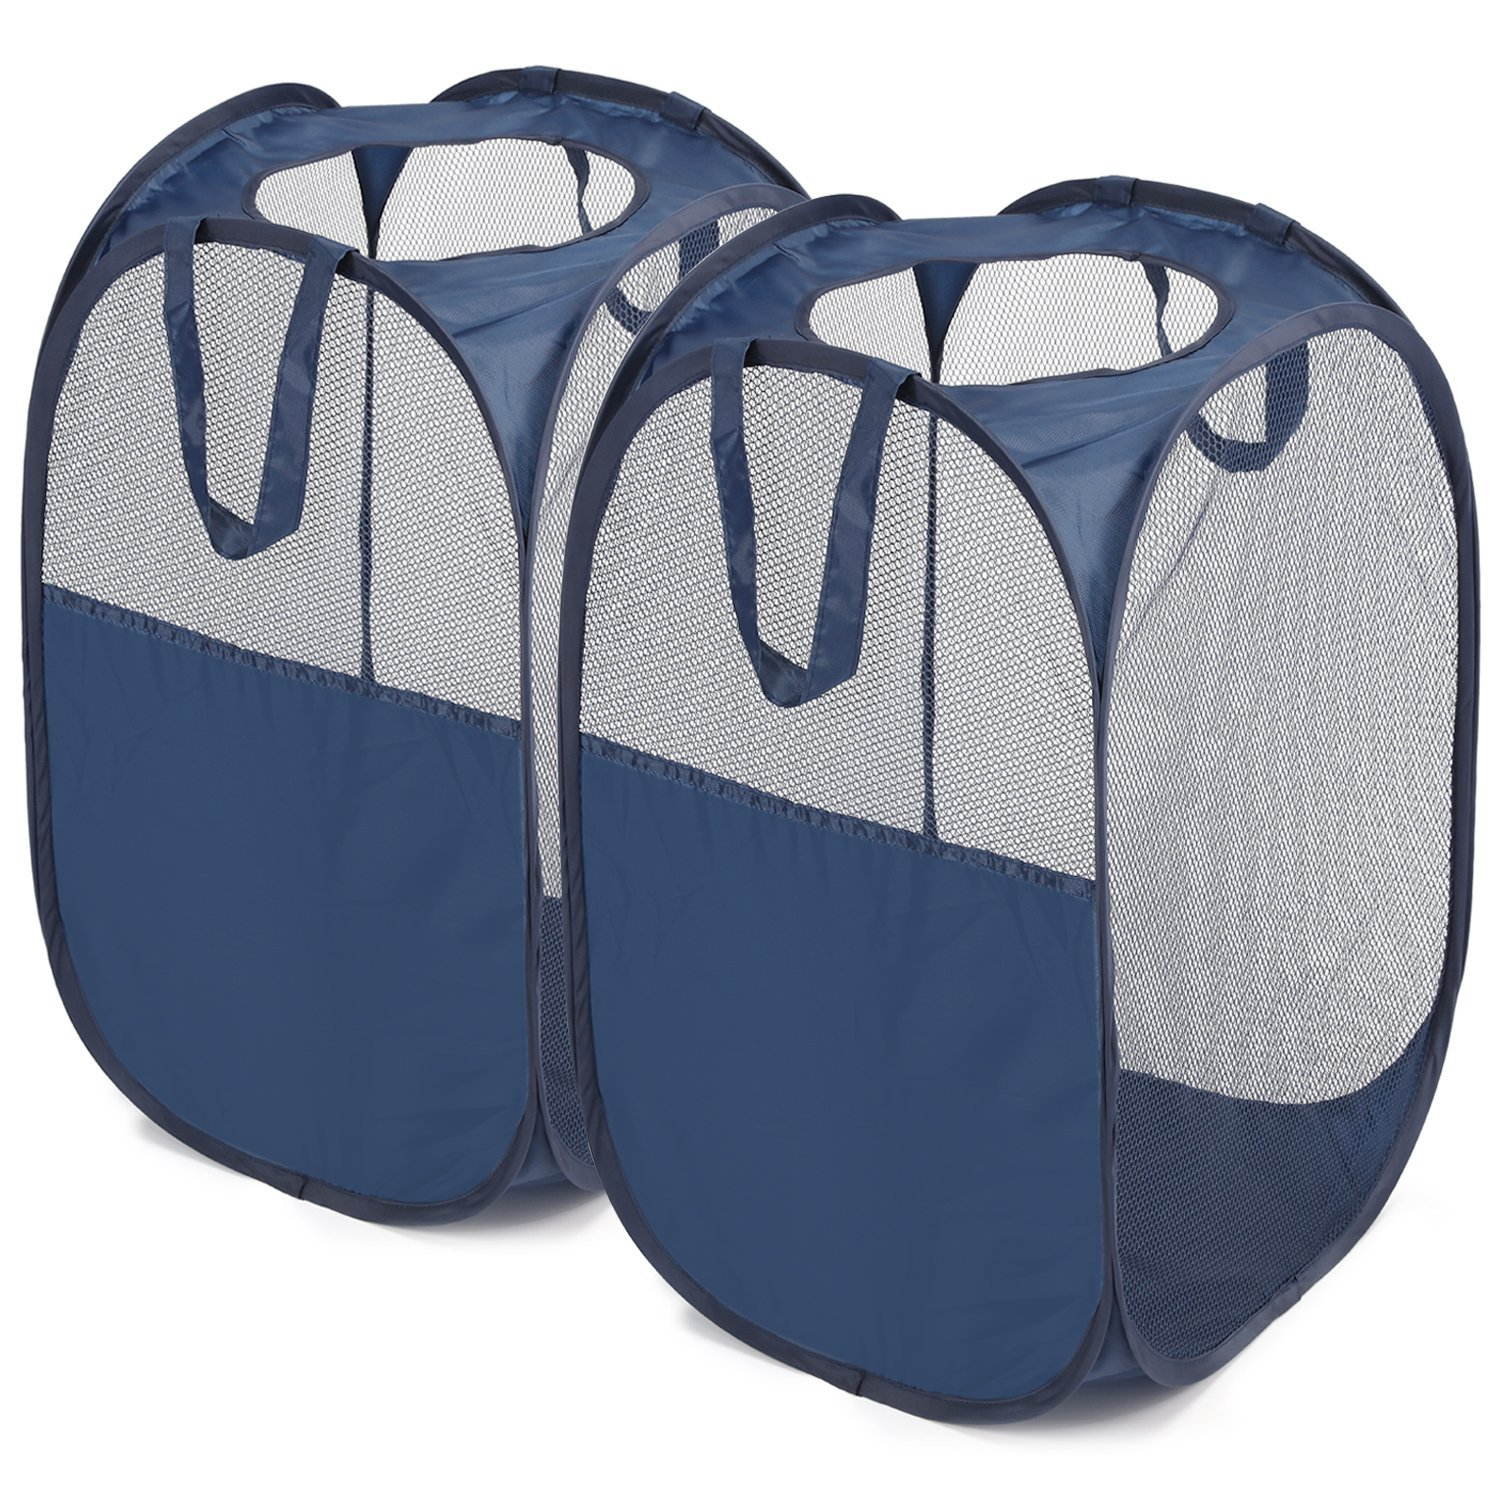 Pop-Up Hamper, Magicfly Foldable Pop-Up Mesh Hamper with Reinforced Carry Handles, Laundry Mesh Basket Blue, Pack of 2